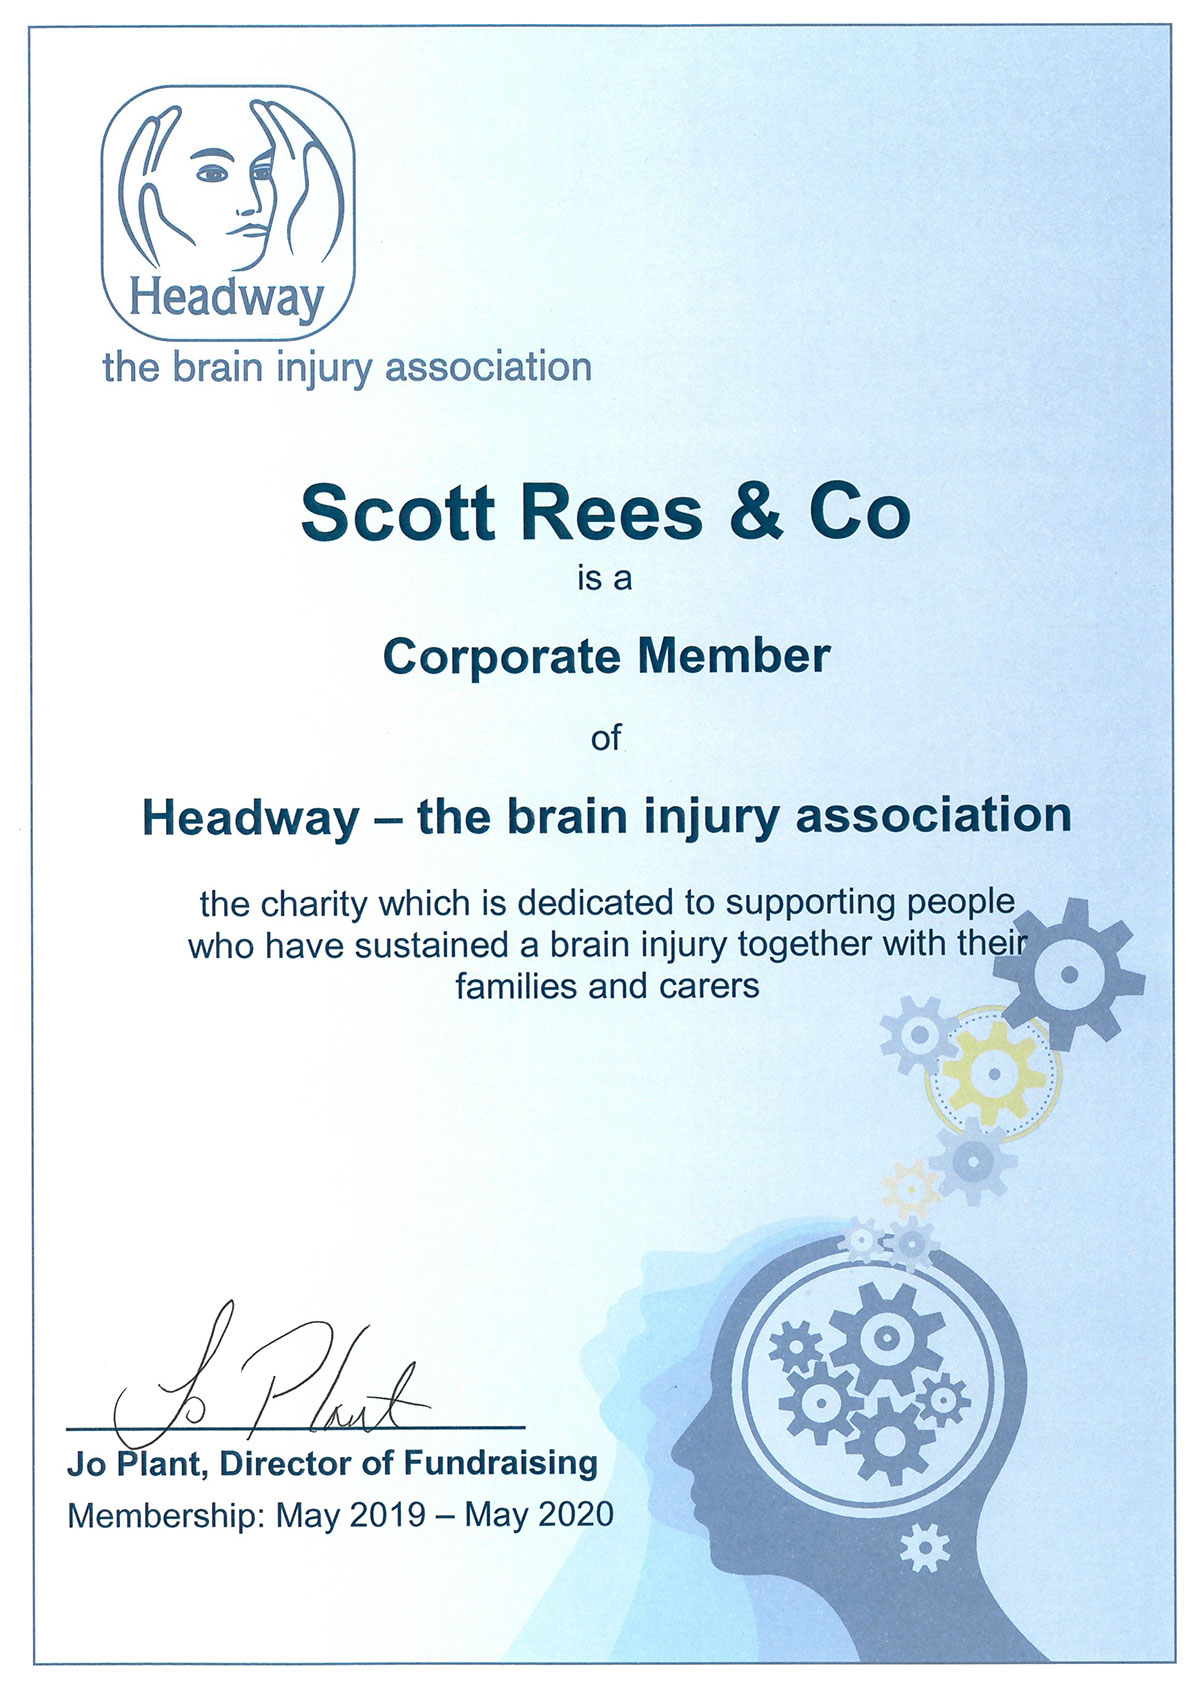 Headway certificate for Scott Rees & Co